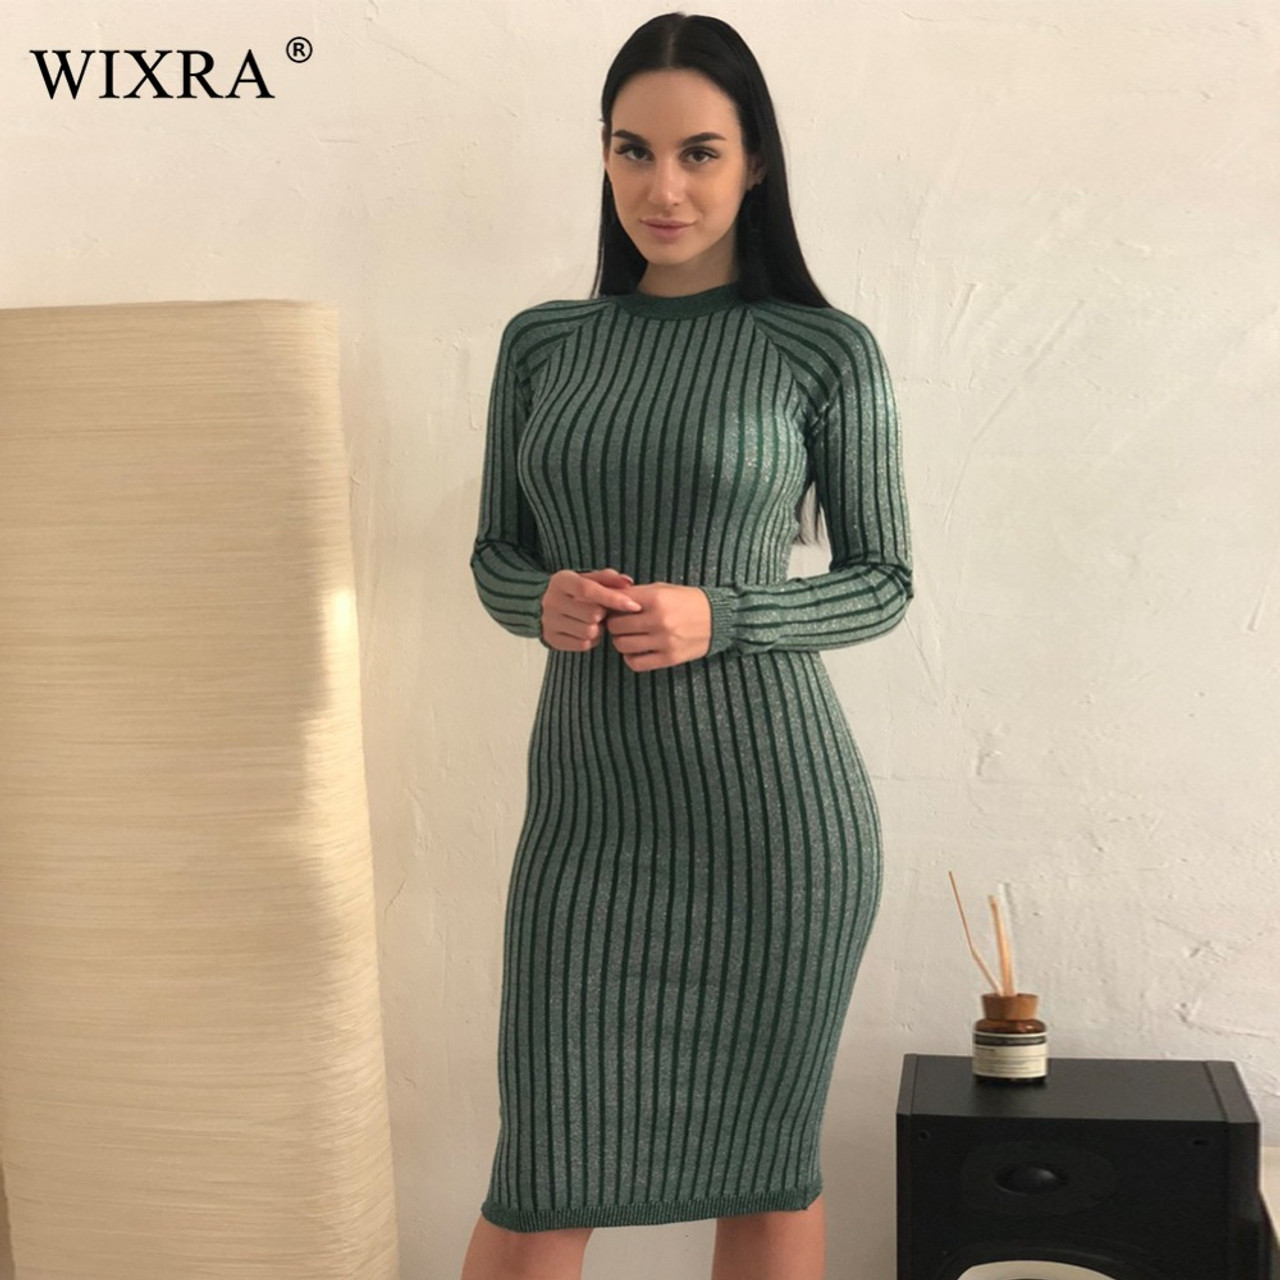 86528e9c4e1 ... Wixra Warm and Charm Women Sweater Dress 2017 Fall Winter Long Sexy  Lurex Bodycon Dresses Elastic ...